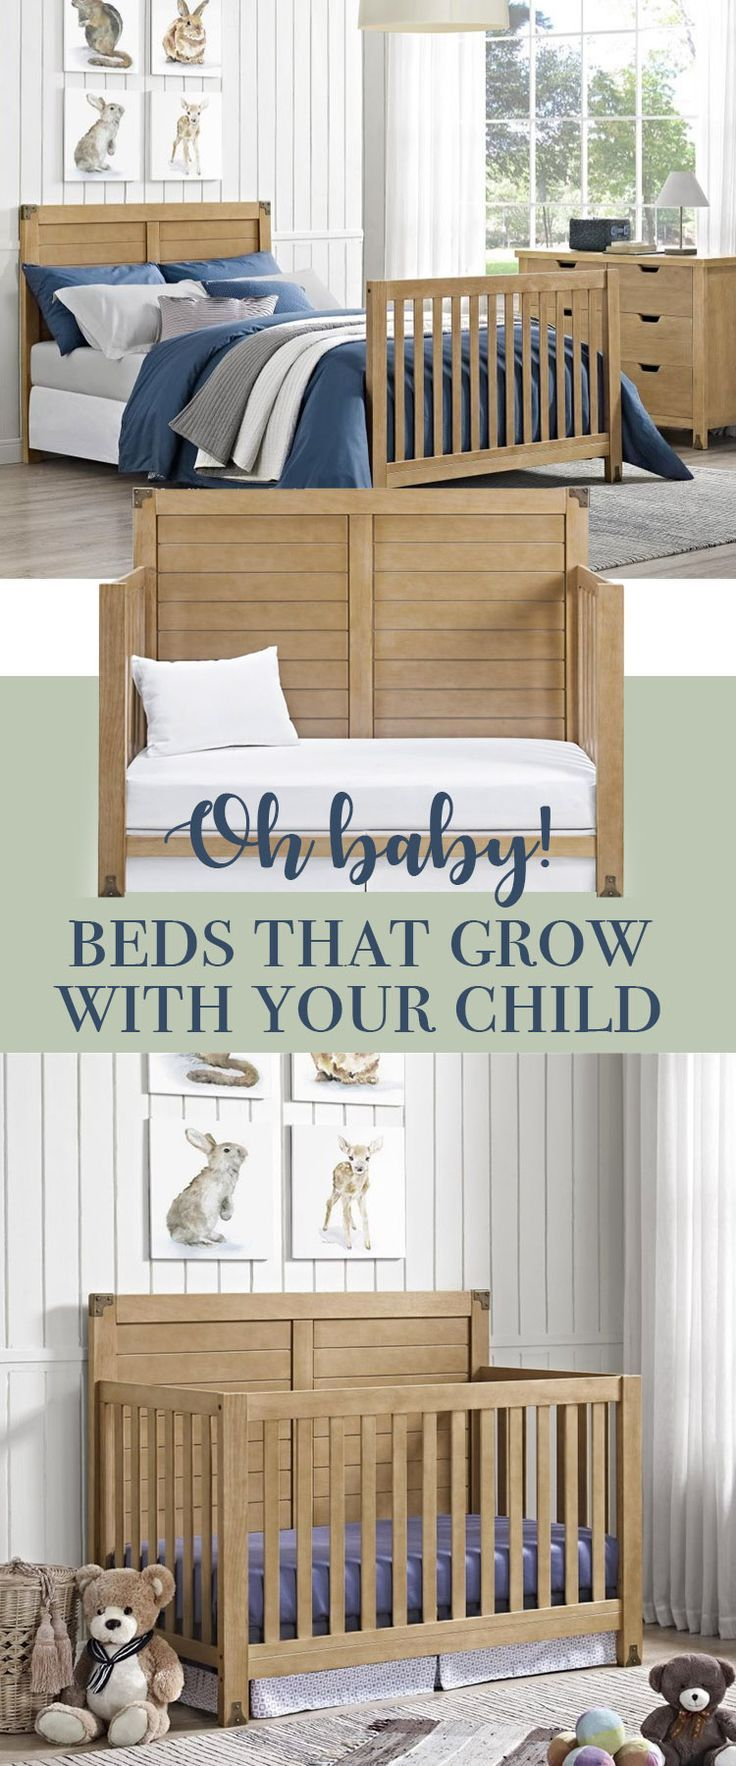 I love furniture that grows with us, and these cribs fit that. From infant bed, to baby, to toddler, and finally the big bed. #furniture #crib #nursery #kids #affiliatel